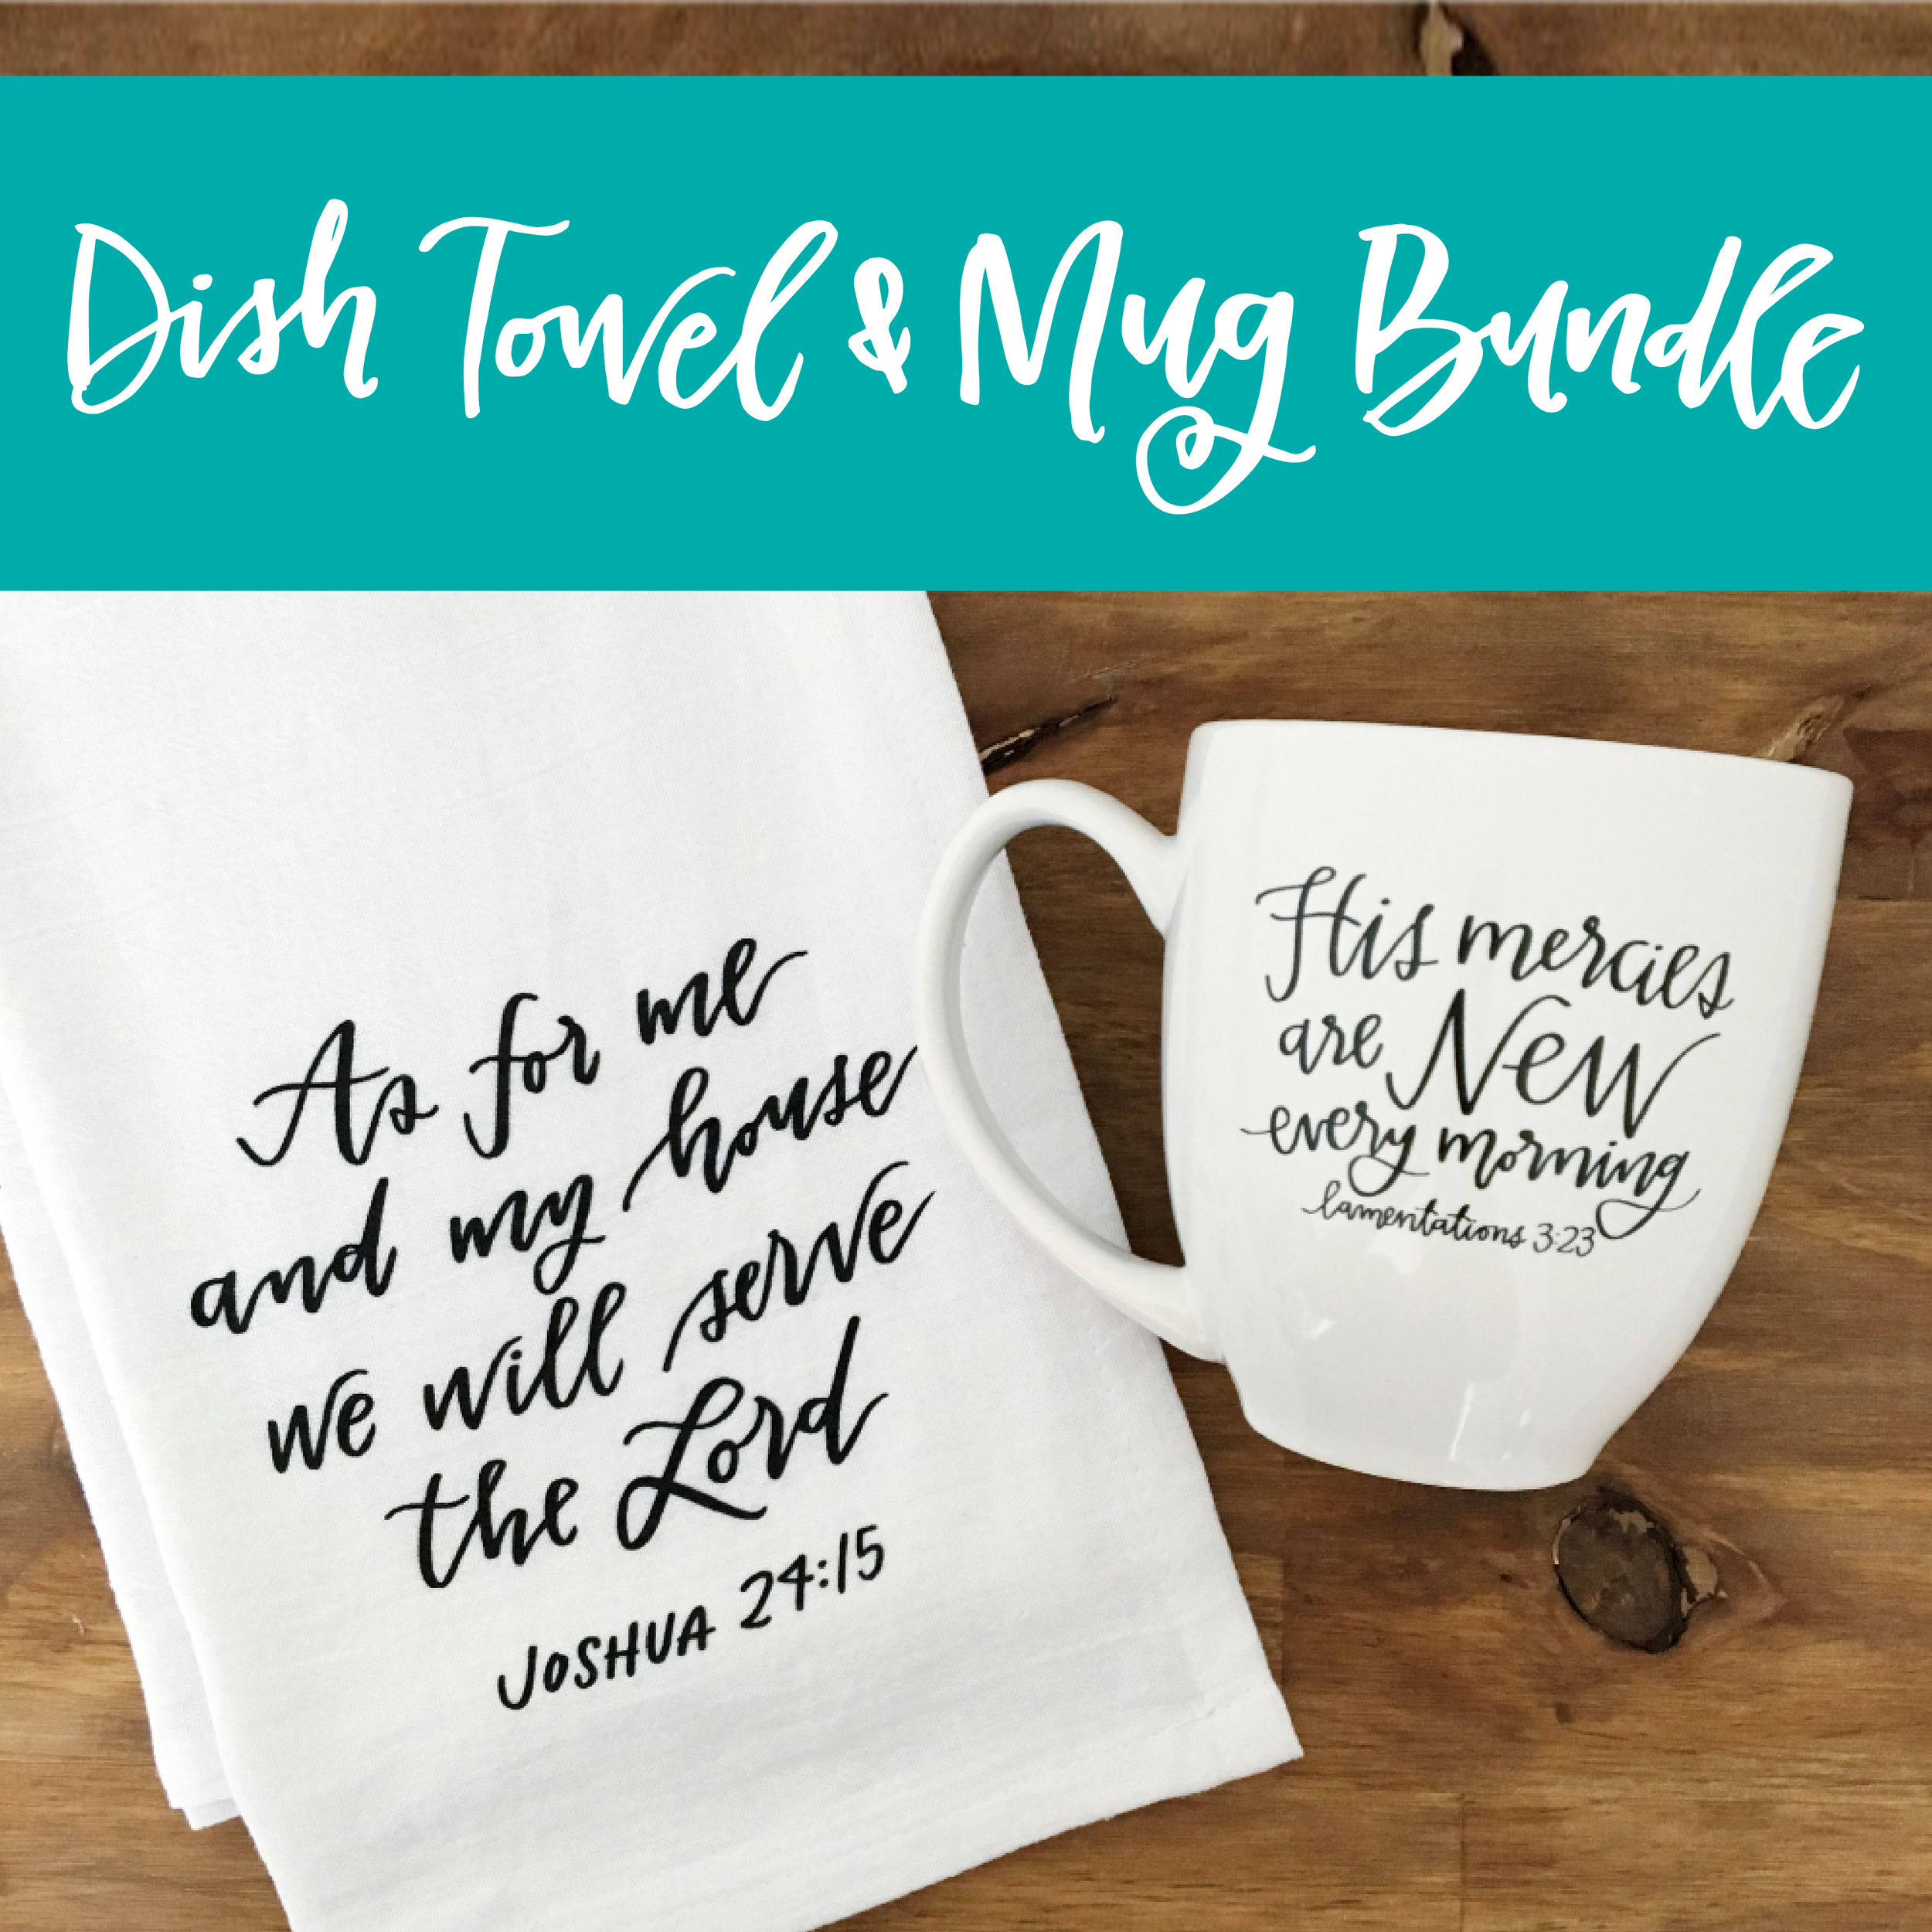 Dish Towel and Mug Gift Set by Lettered Life / Gift for Her / Christian Gift / Bible Verse Gift / Mercies New Every Morning Mug / As for Me and My House Dish Towel / Tea Towel